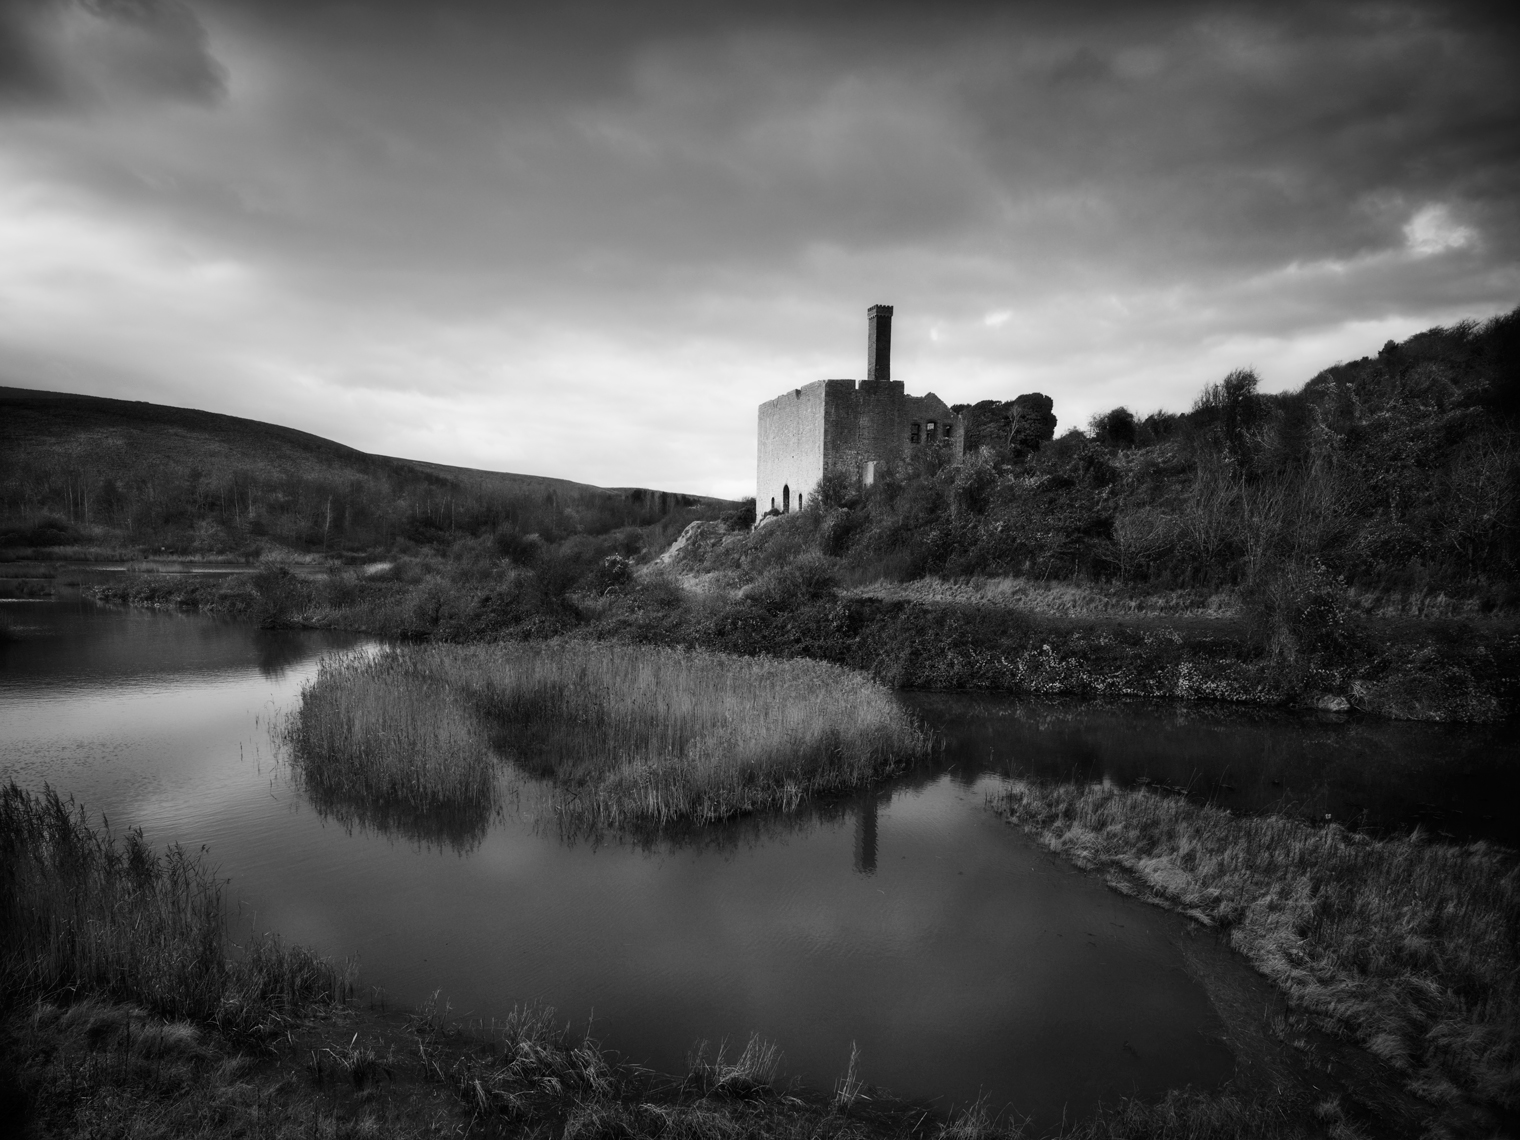 Jon Wyatt Photography - Disused Limekilns in salt marshes at East Aberthaw, South Wales